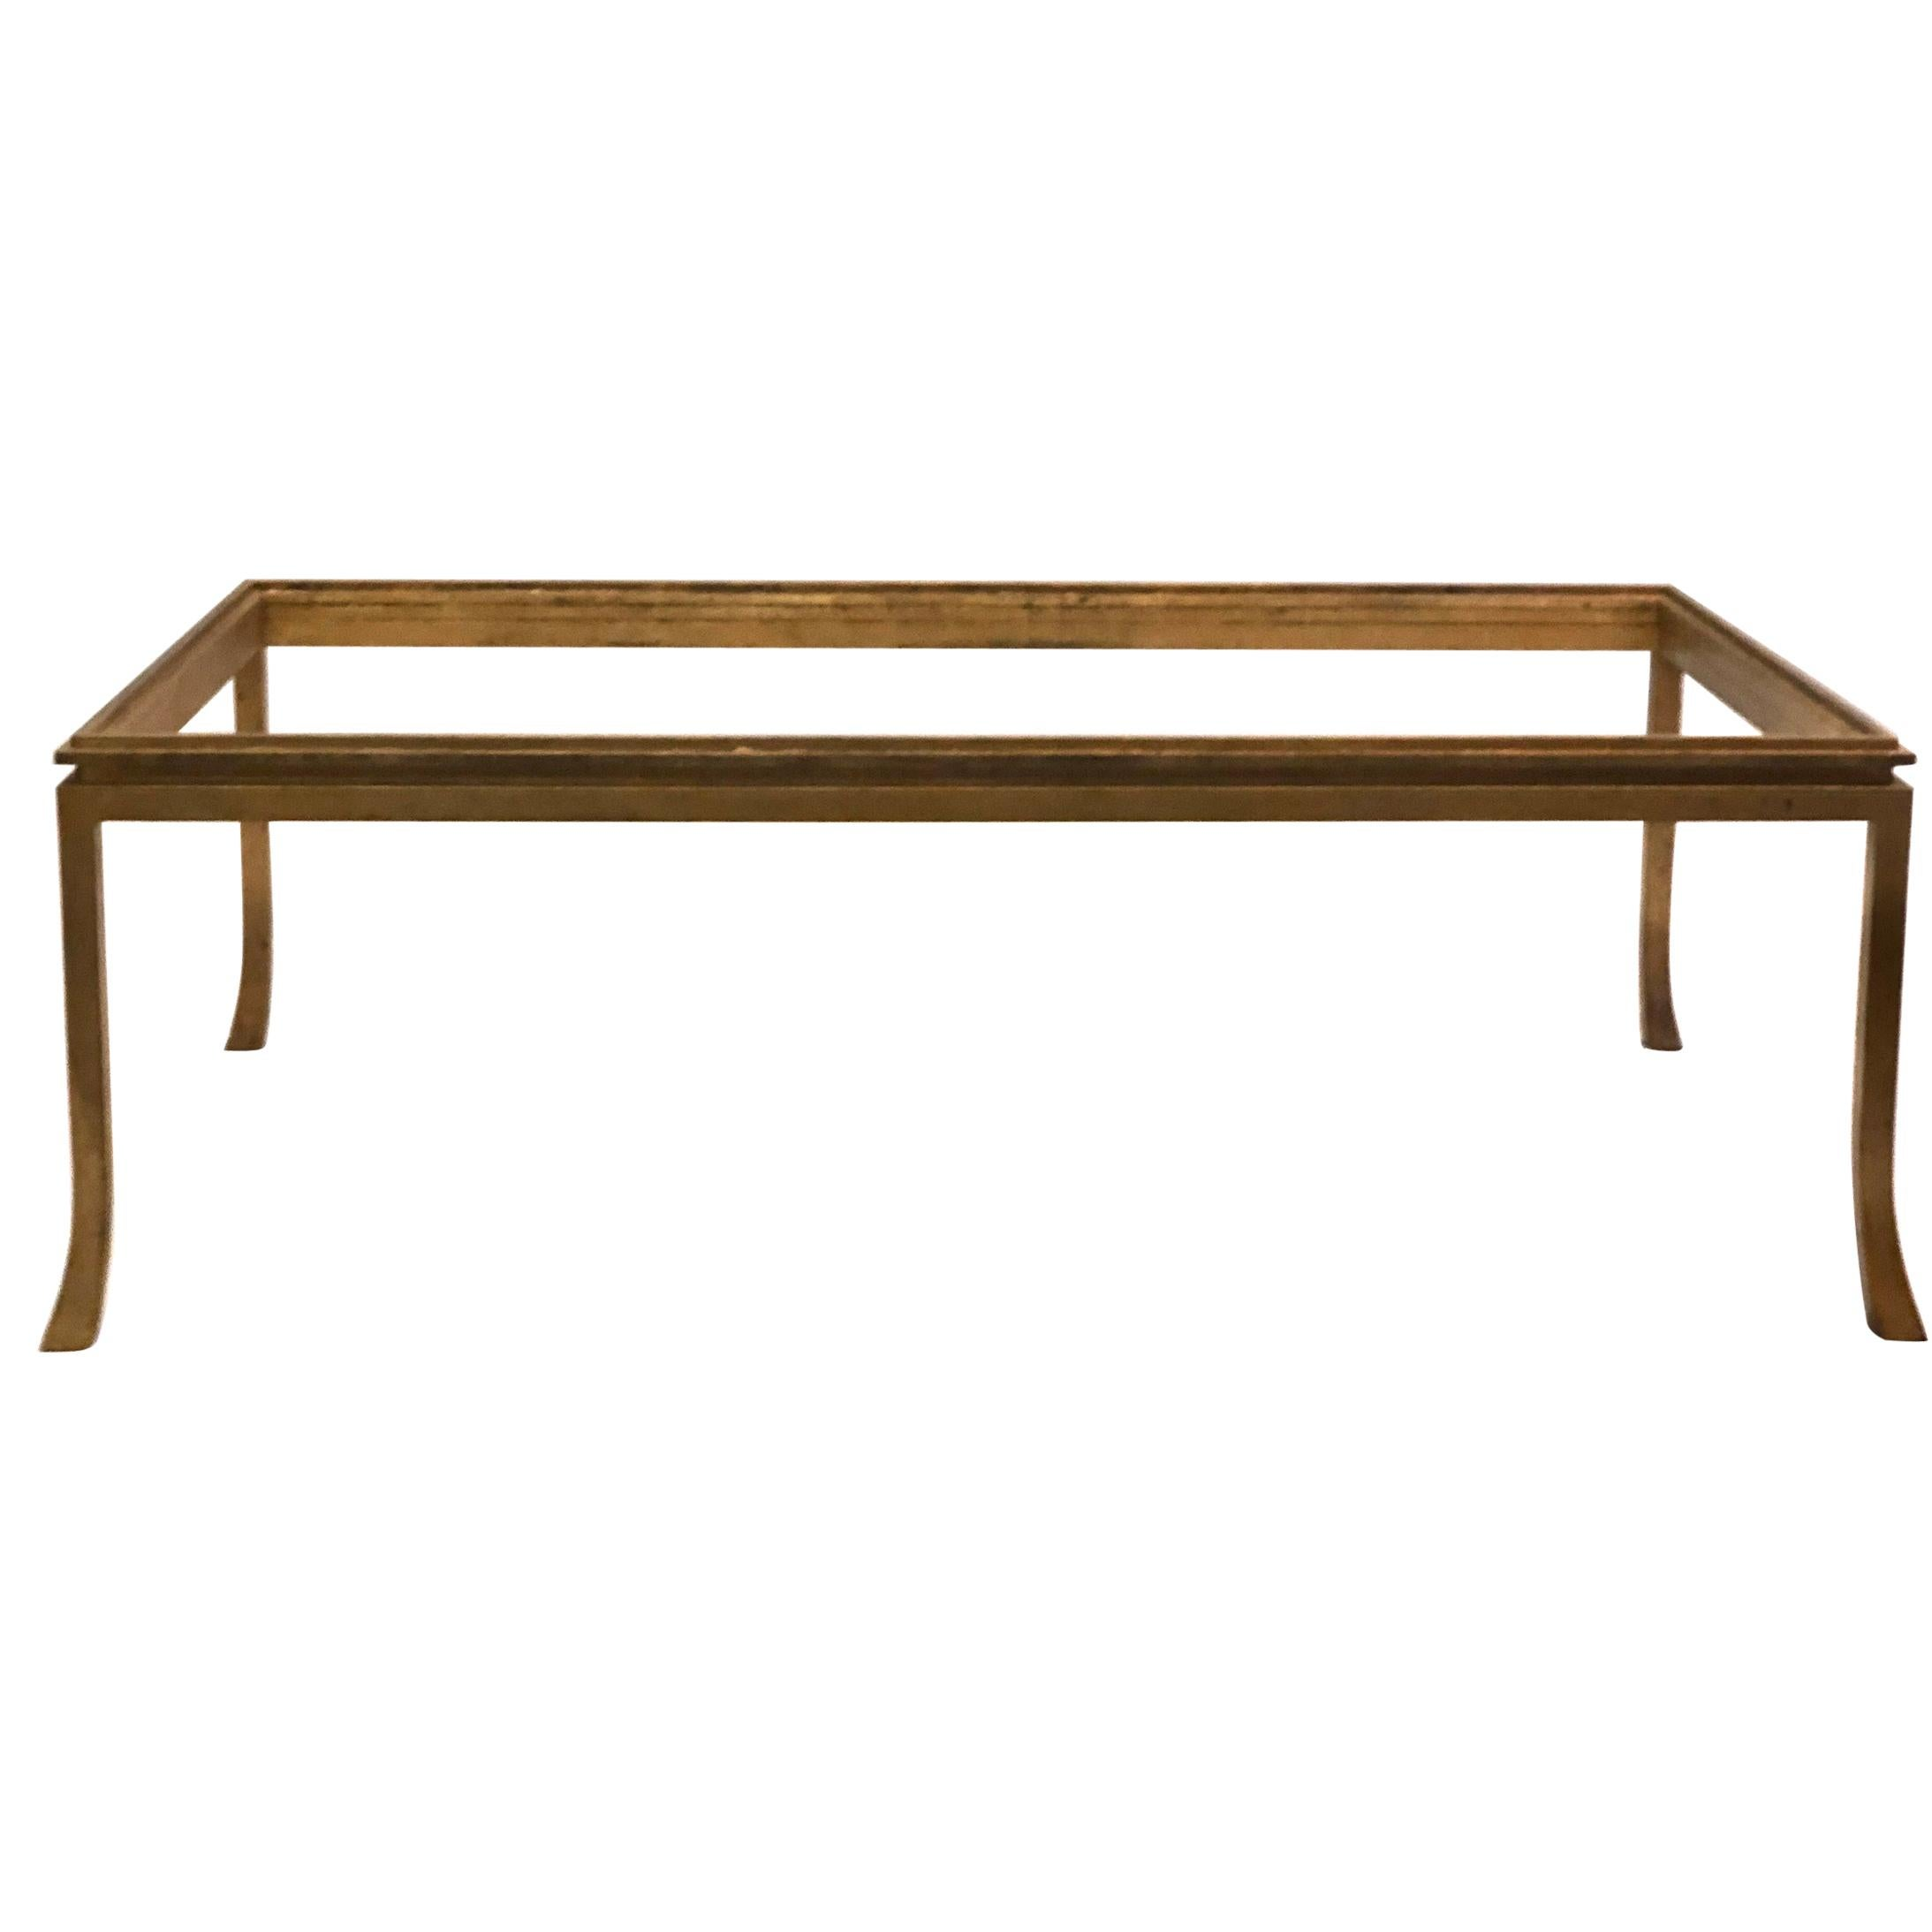 French Mid-Century Modern Gilt Wrought Iron Coffee Table by Maison Ramsay, 1970